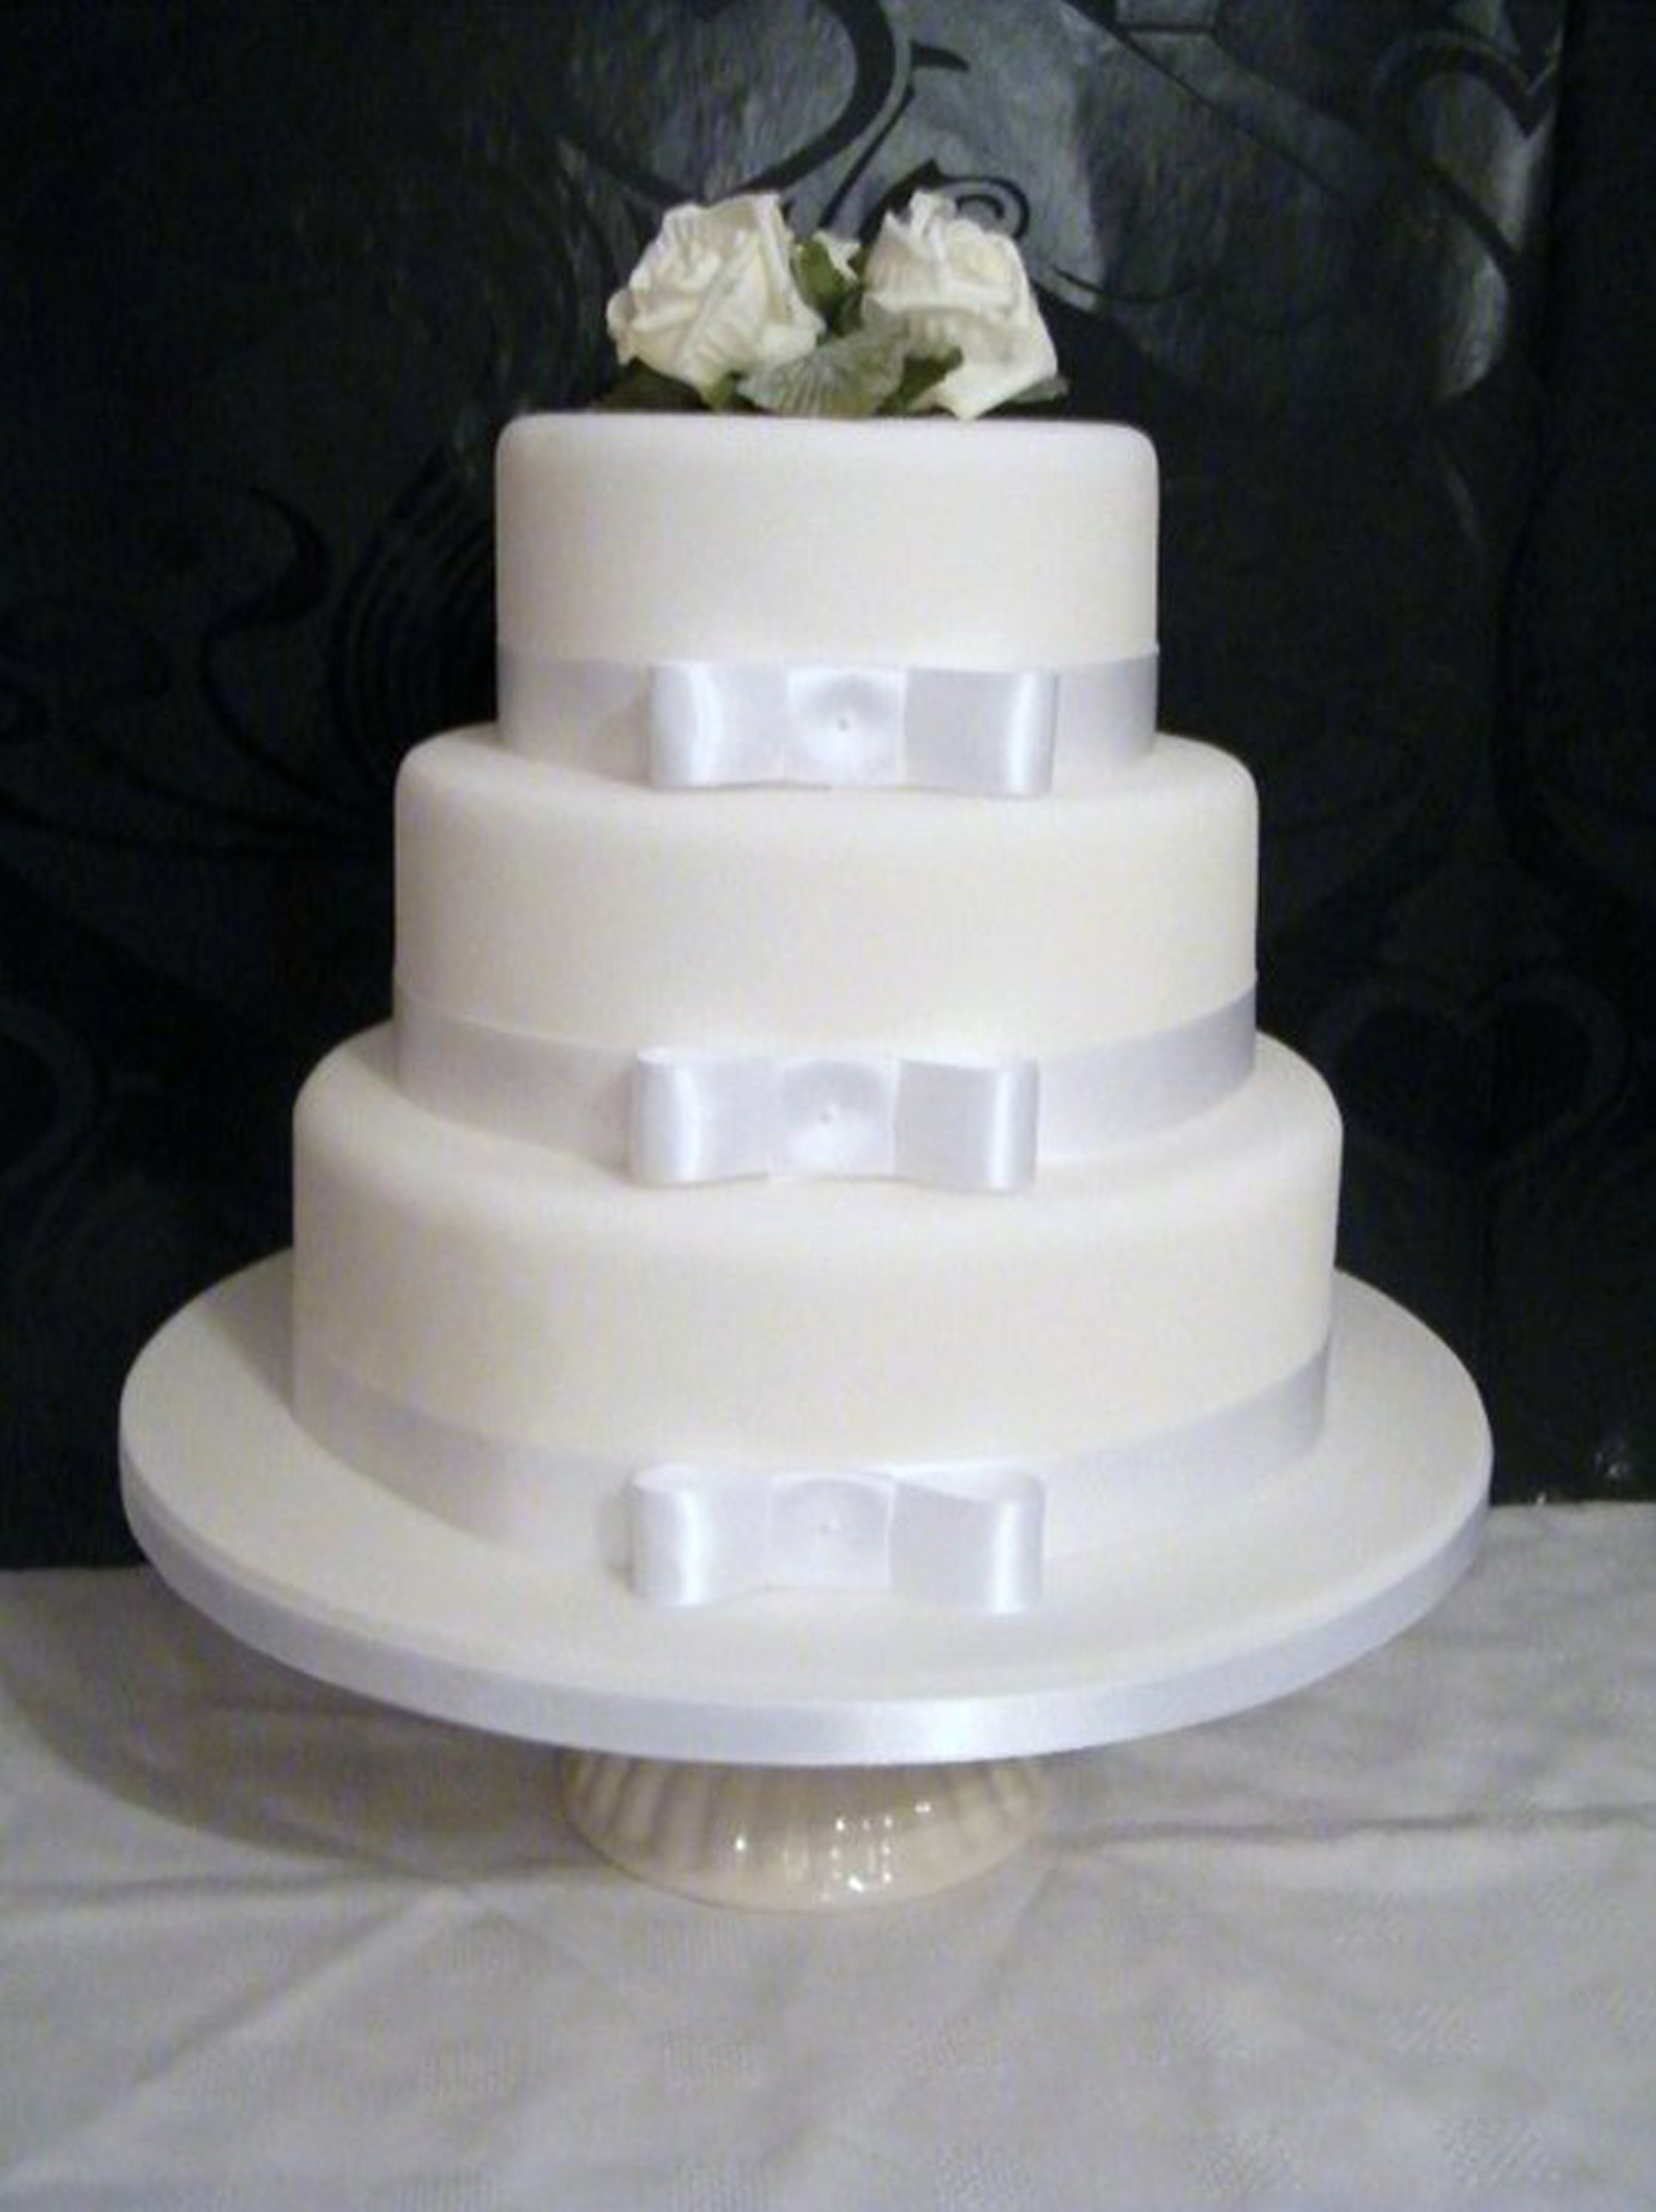 5 Top Budget Savvy Tips To Consider When Choosing Your Wedding Cake - Wedding Cake Dummy